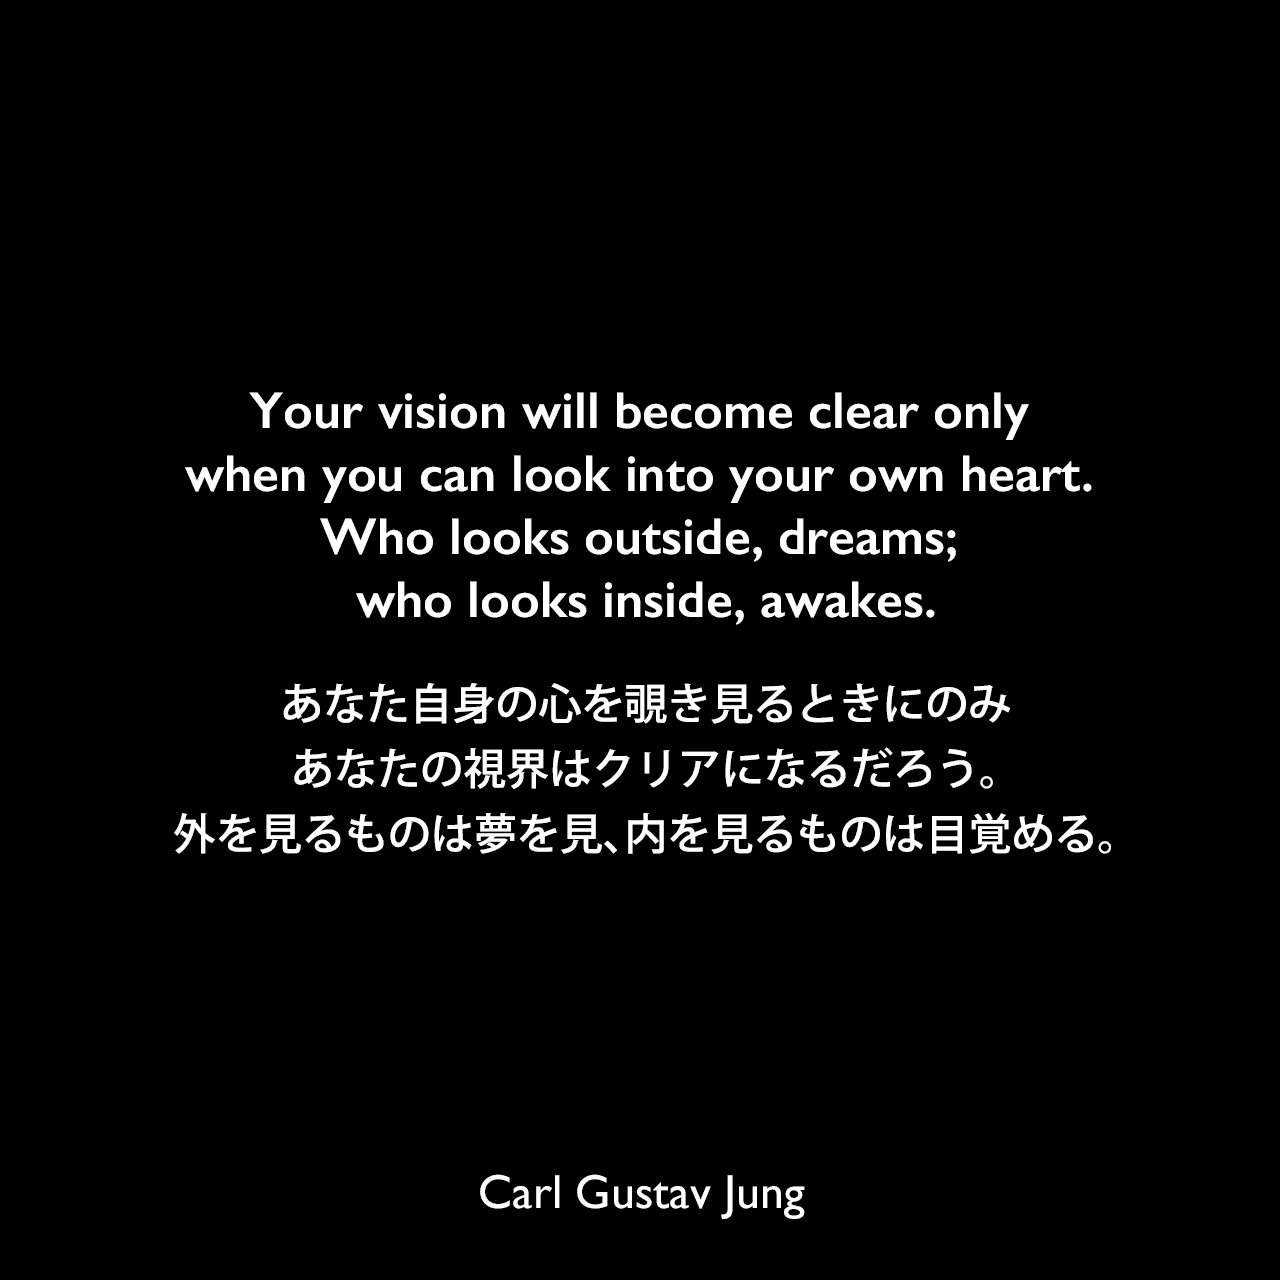 Your vision will become clear only when you can look into your own heart. Who looks outside, dreams; who looks inside, awakes.あなた自身の心を覗き見るときにのみ、あなたの視界はクリアになるだろう。外を見るものは夢を見、内を見るものは目覚める。Carl Gustav Jung